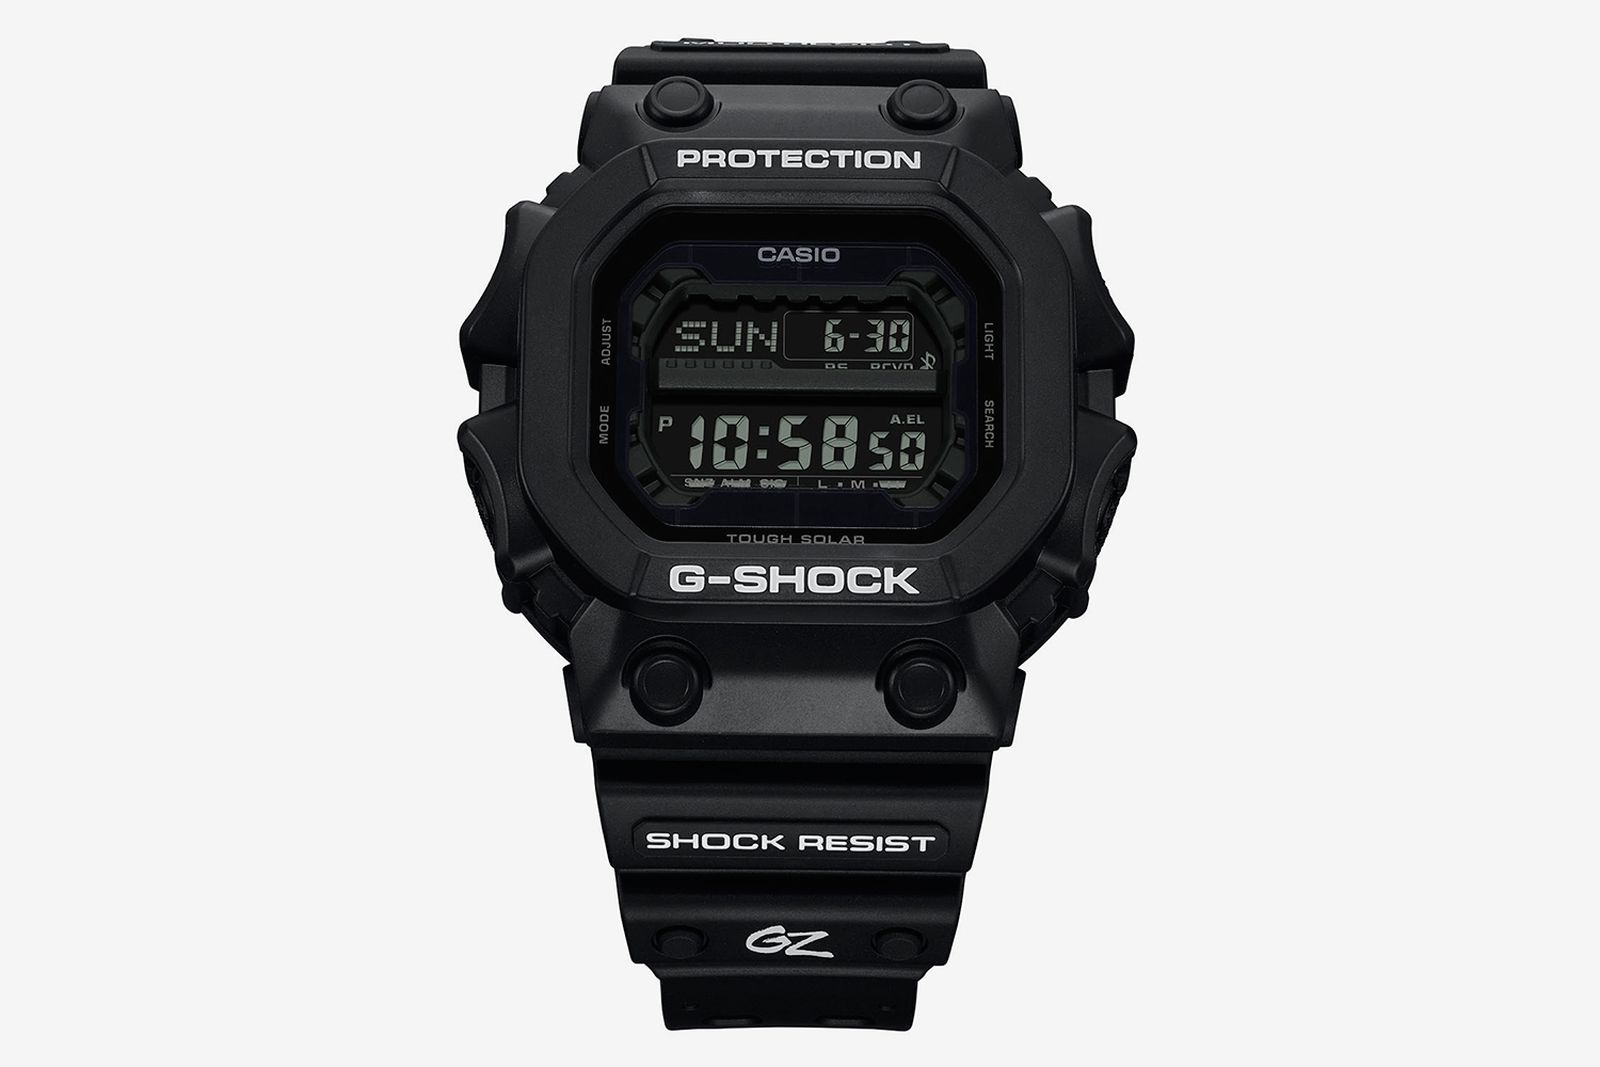 gorillaz g shock dw5600 watch release date price info G-SHOCK DW-5600